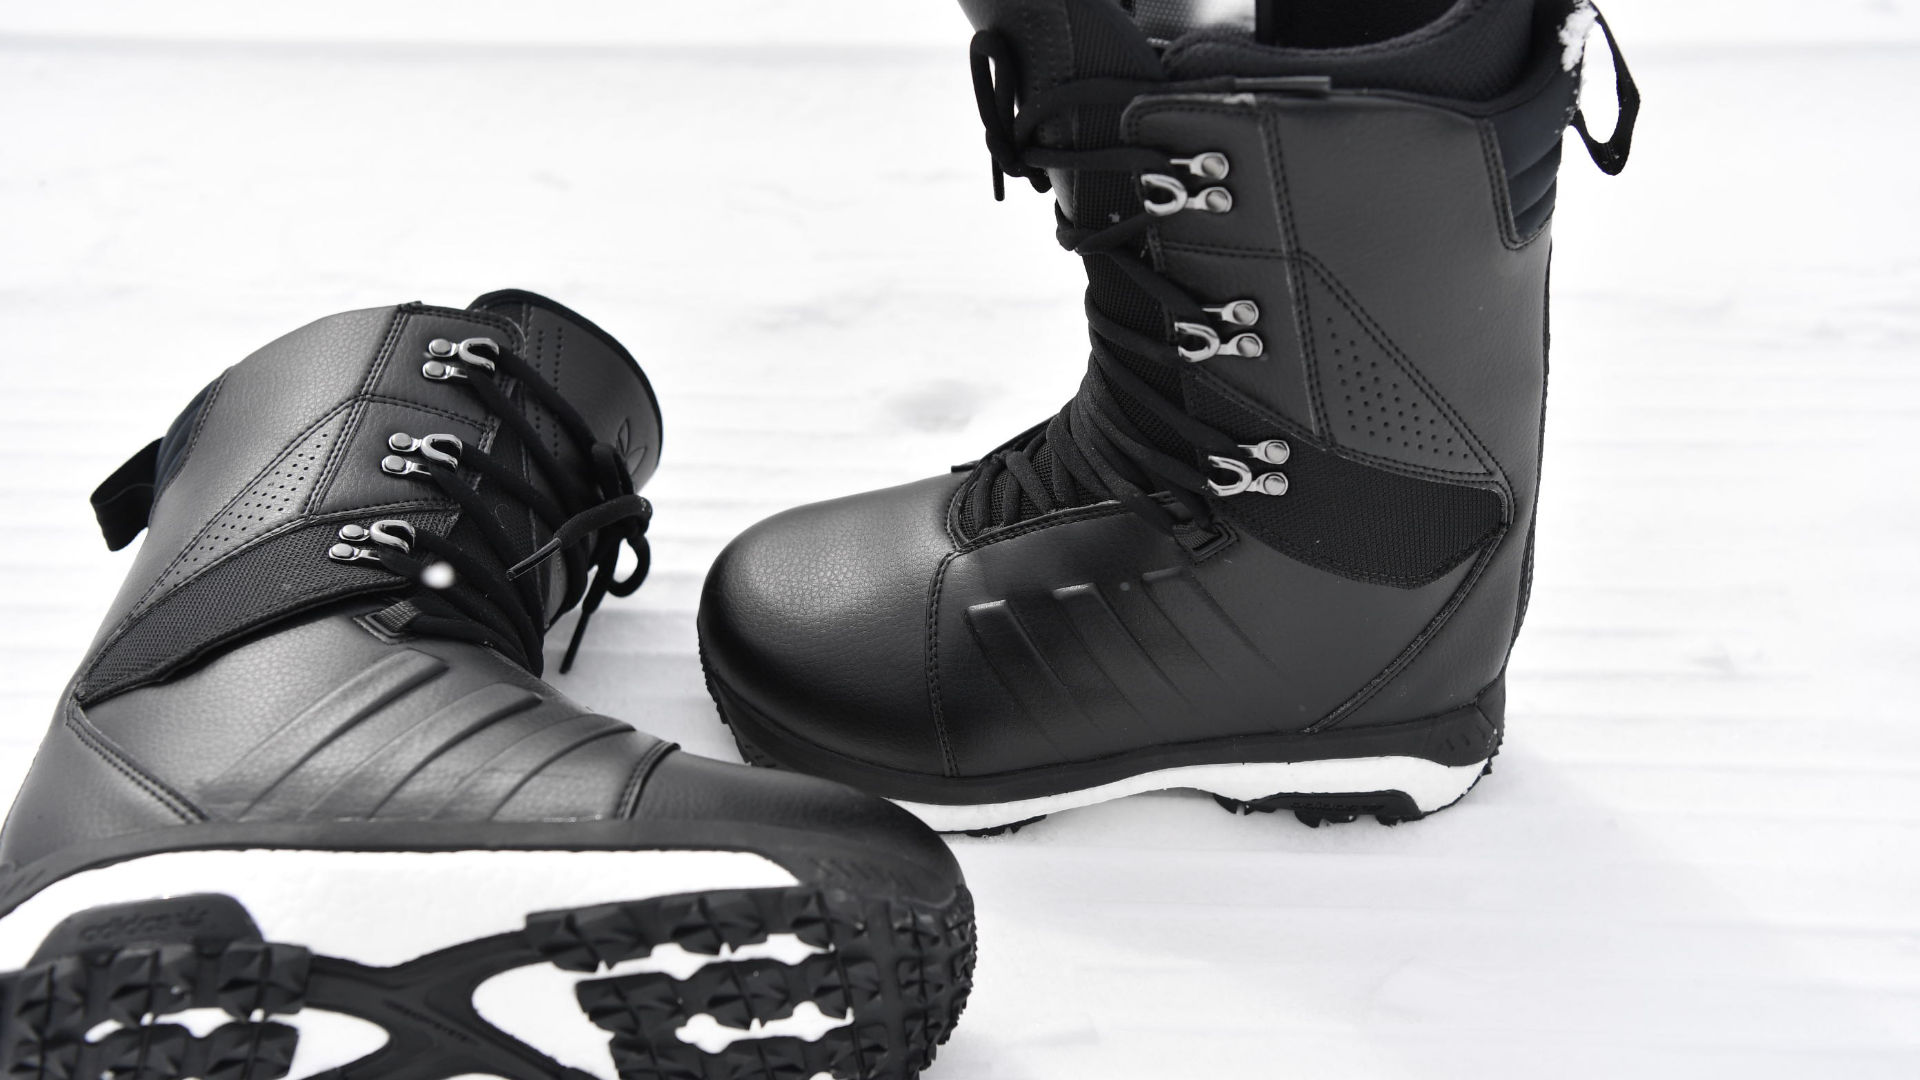 7cc35a6120048 The cushioning soles of an adidas snowboard boot